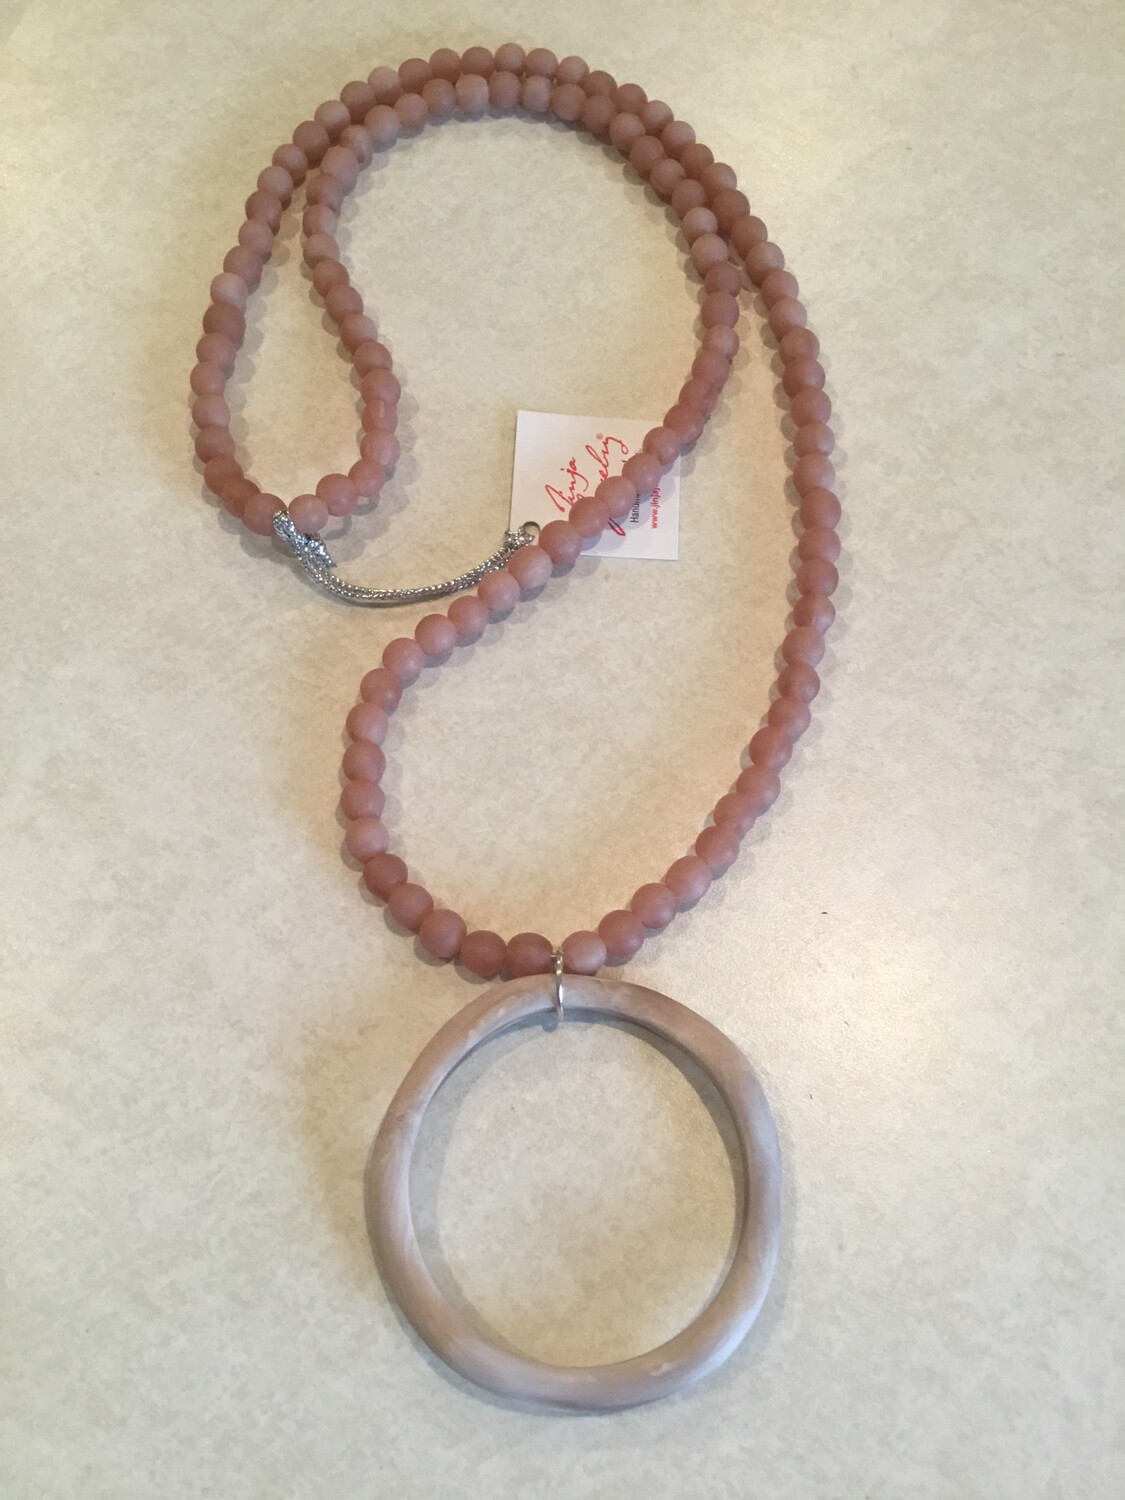 Long Handmade Beads Necklace With Large Abstract Circle Pendant